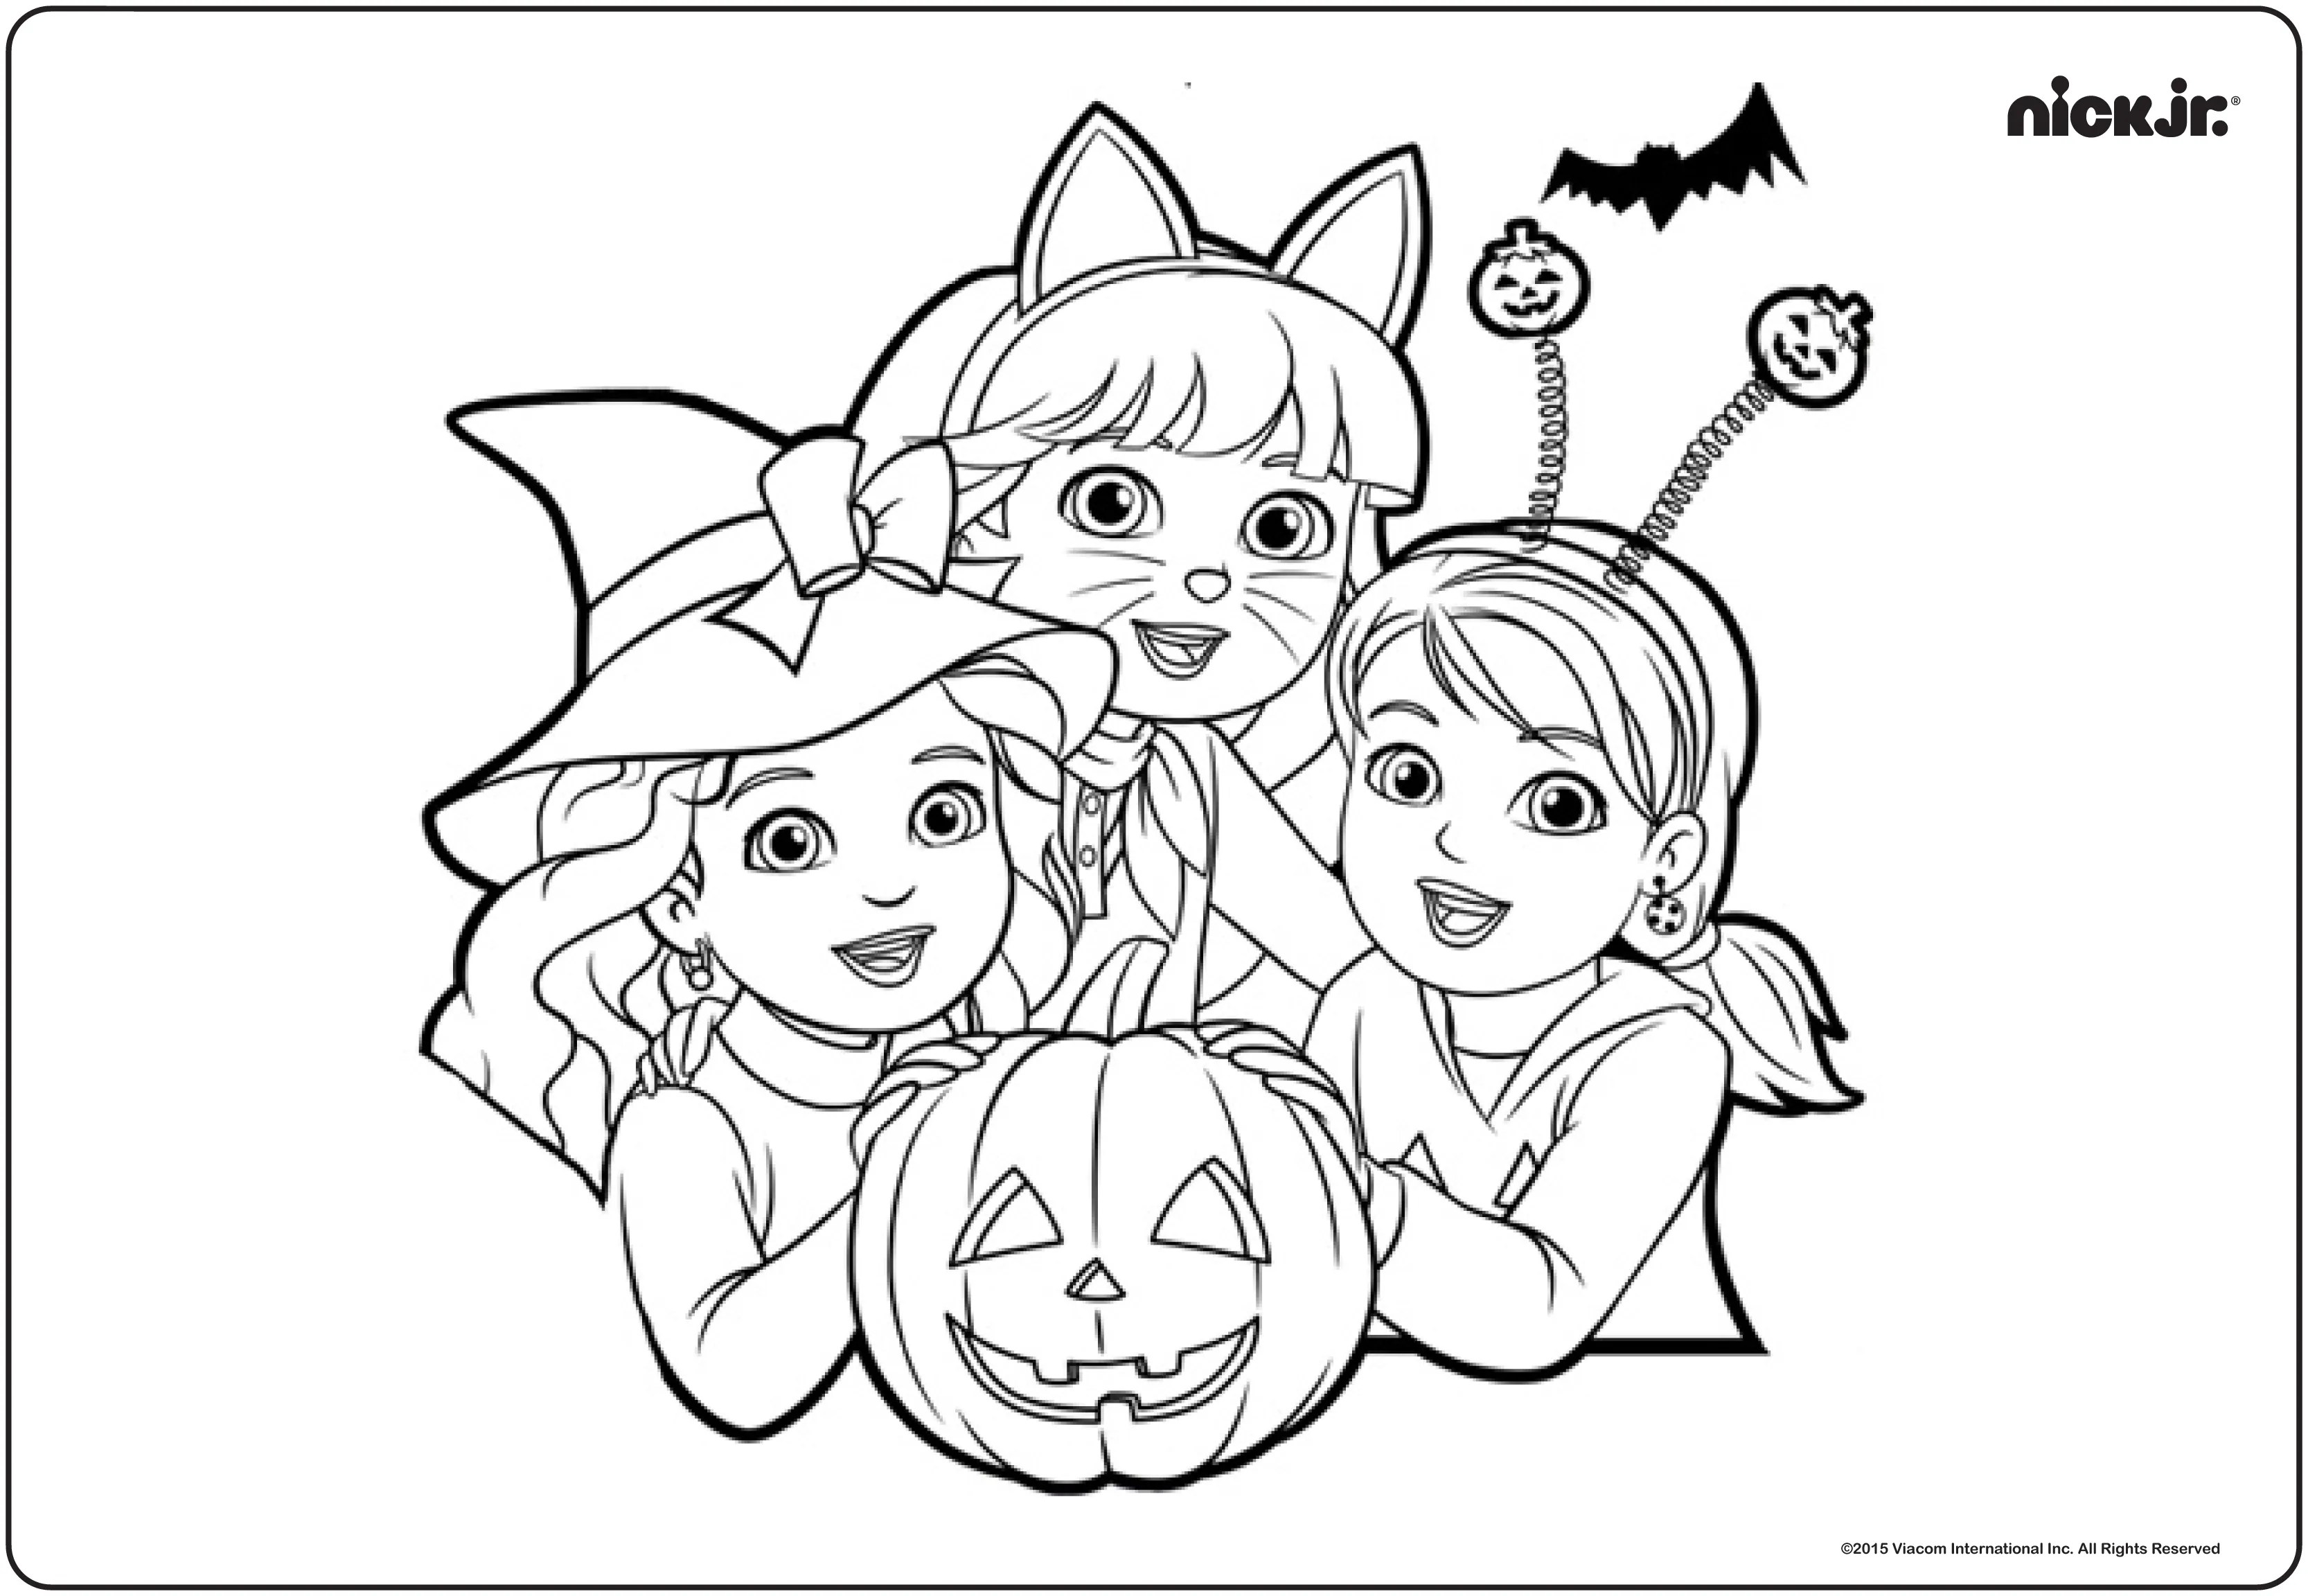 Nick Jr Pumpkin Party and Giveaway - In The Playroom